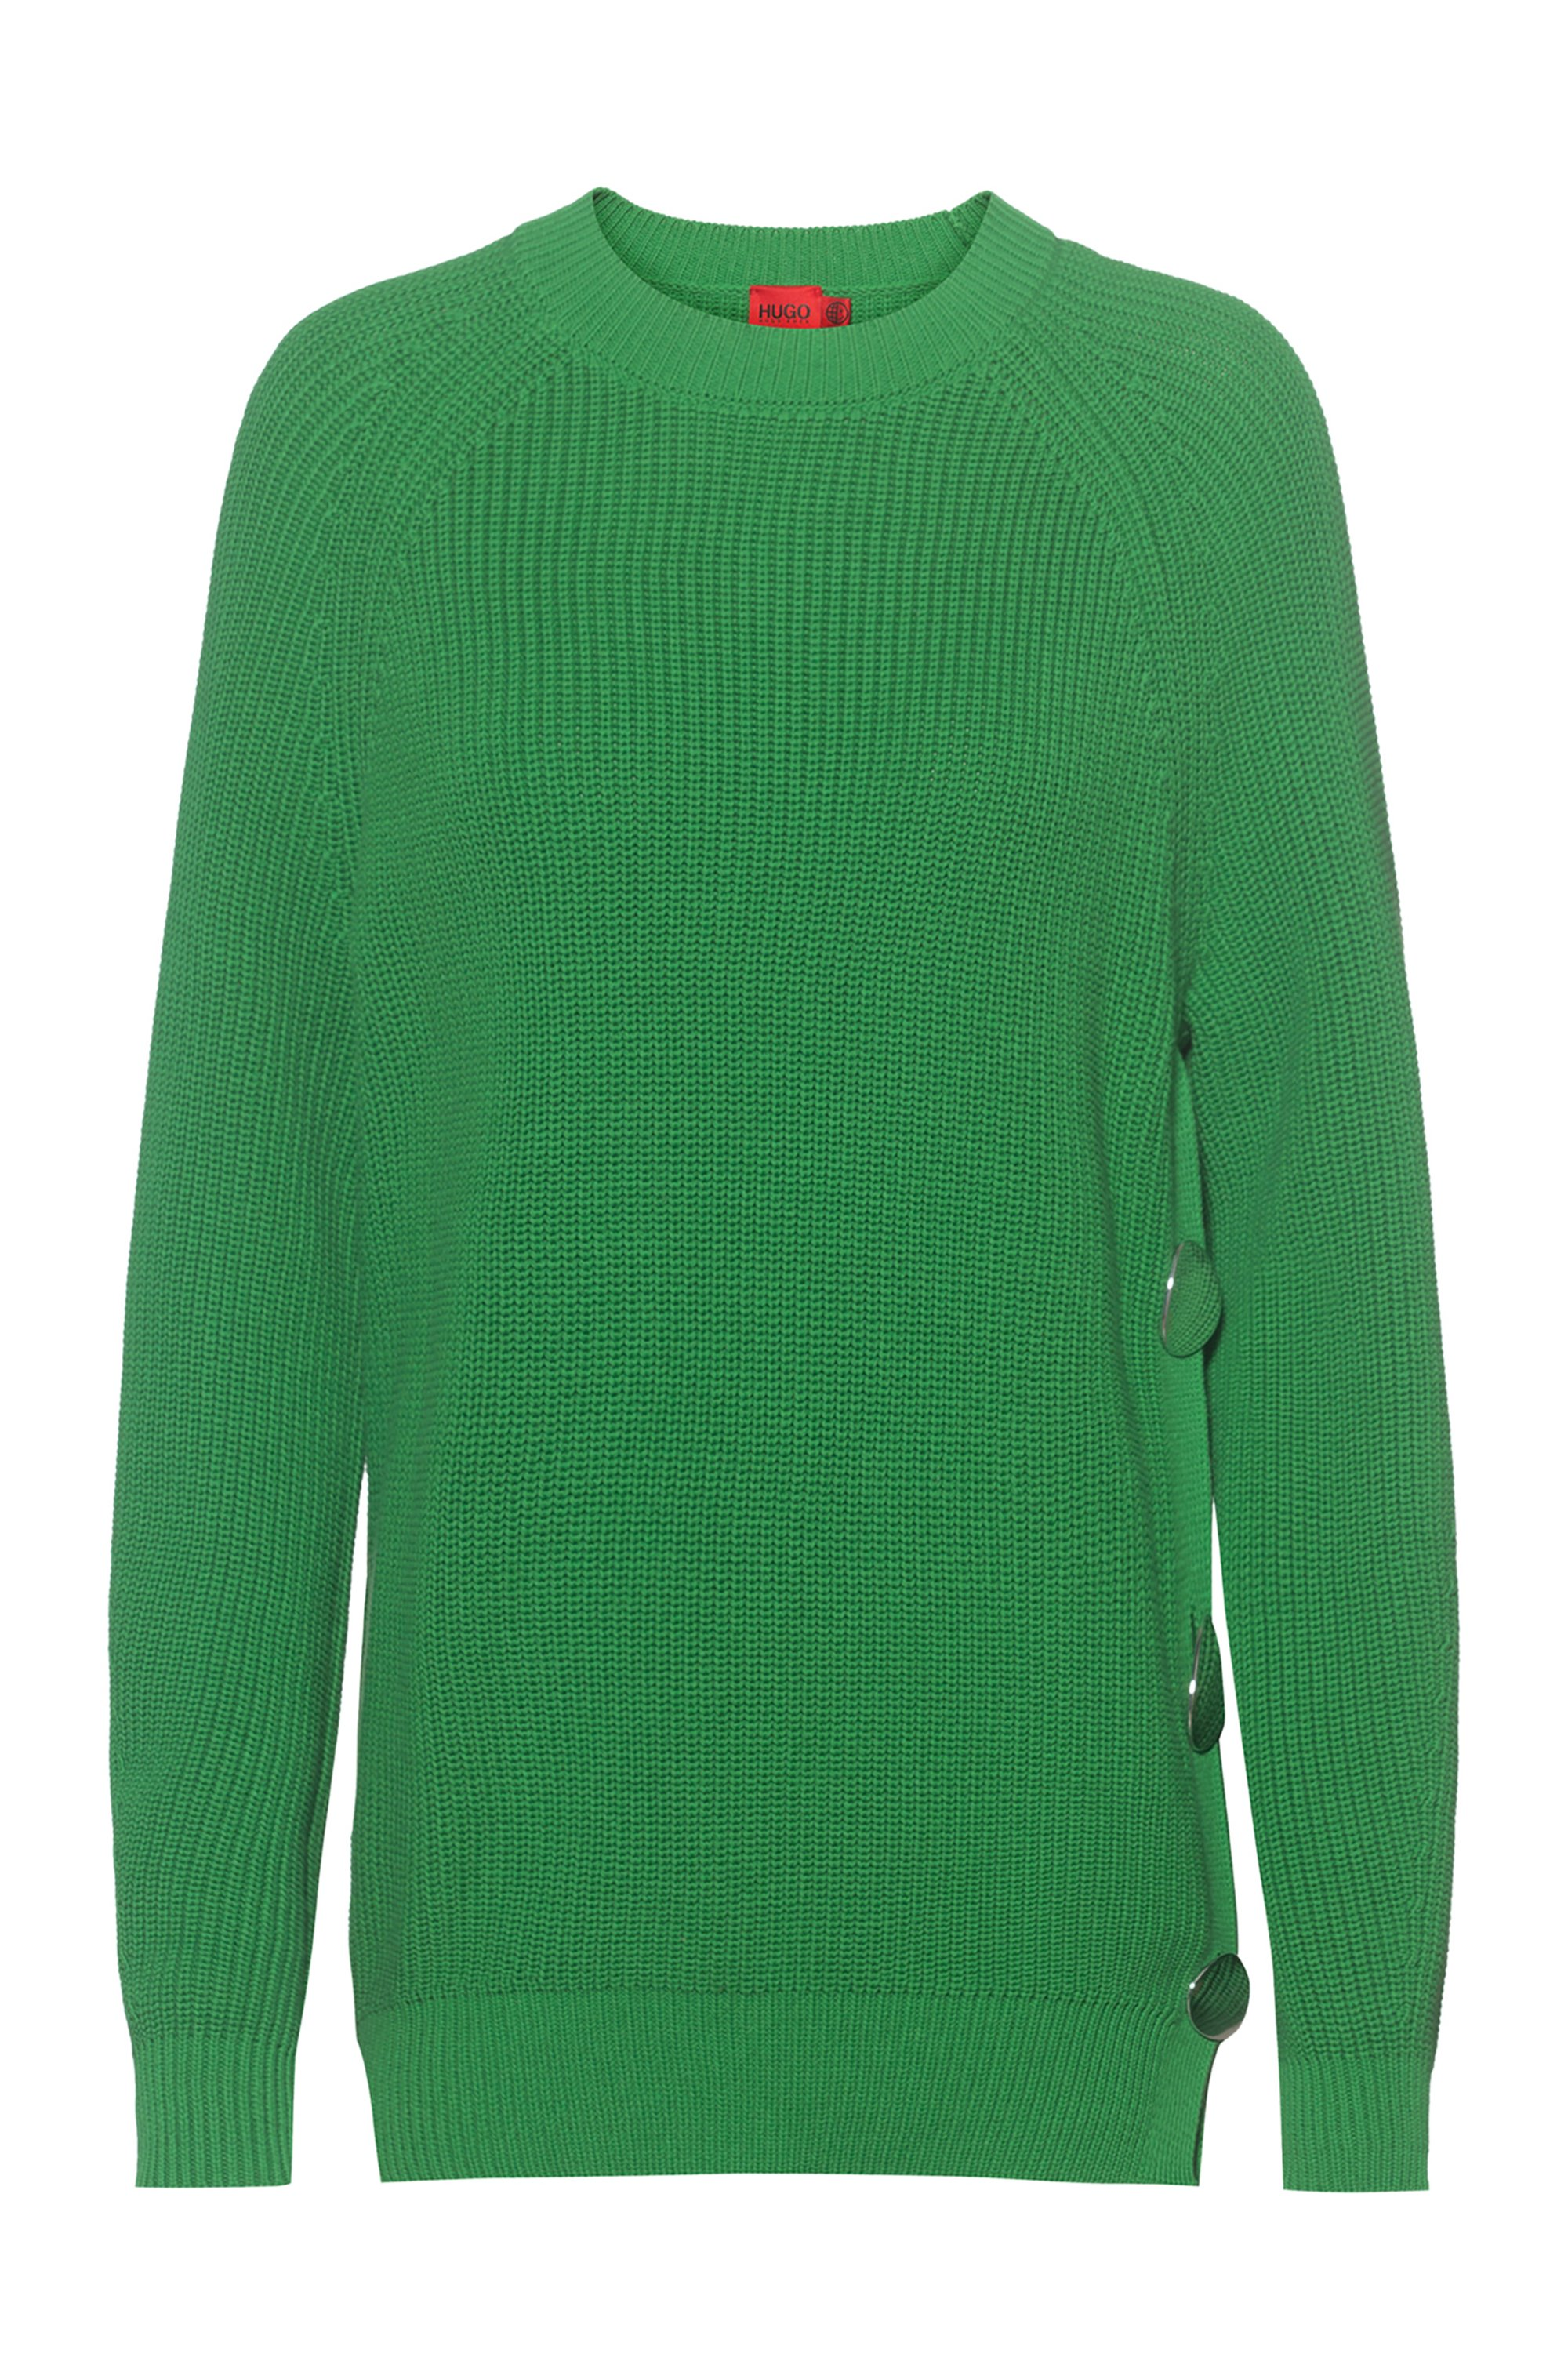 Oversized sweater in organic cotton with button detail, Green